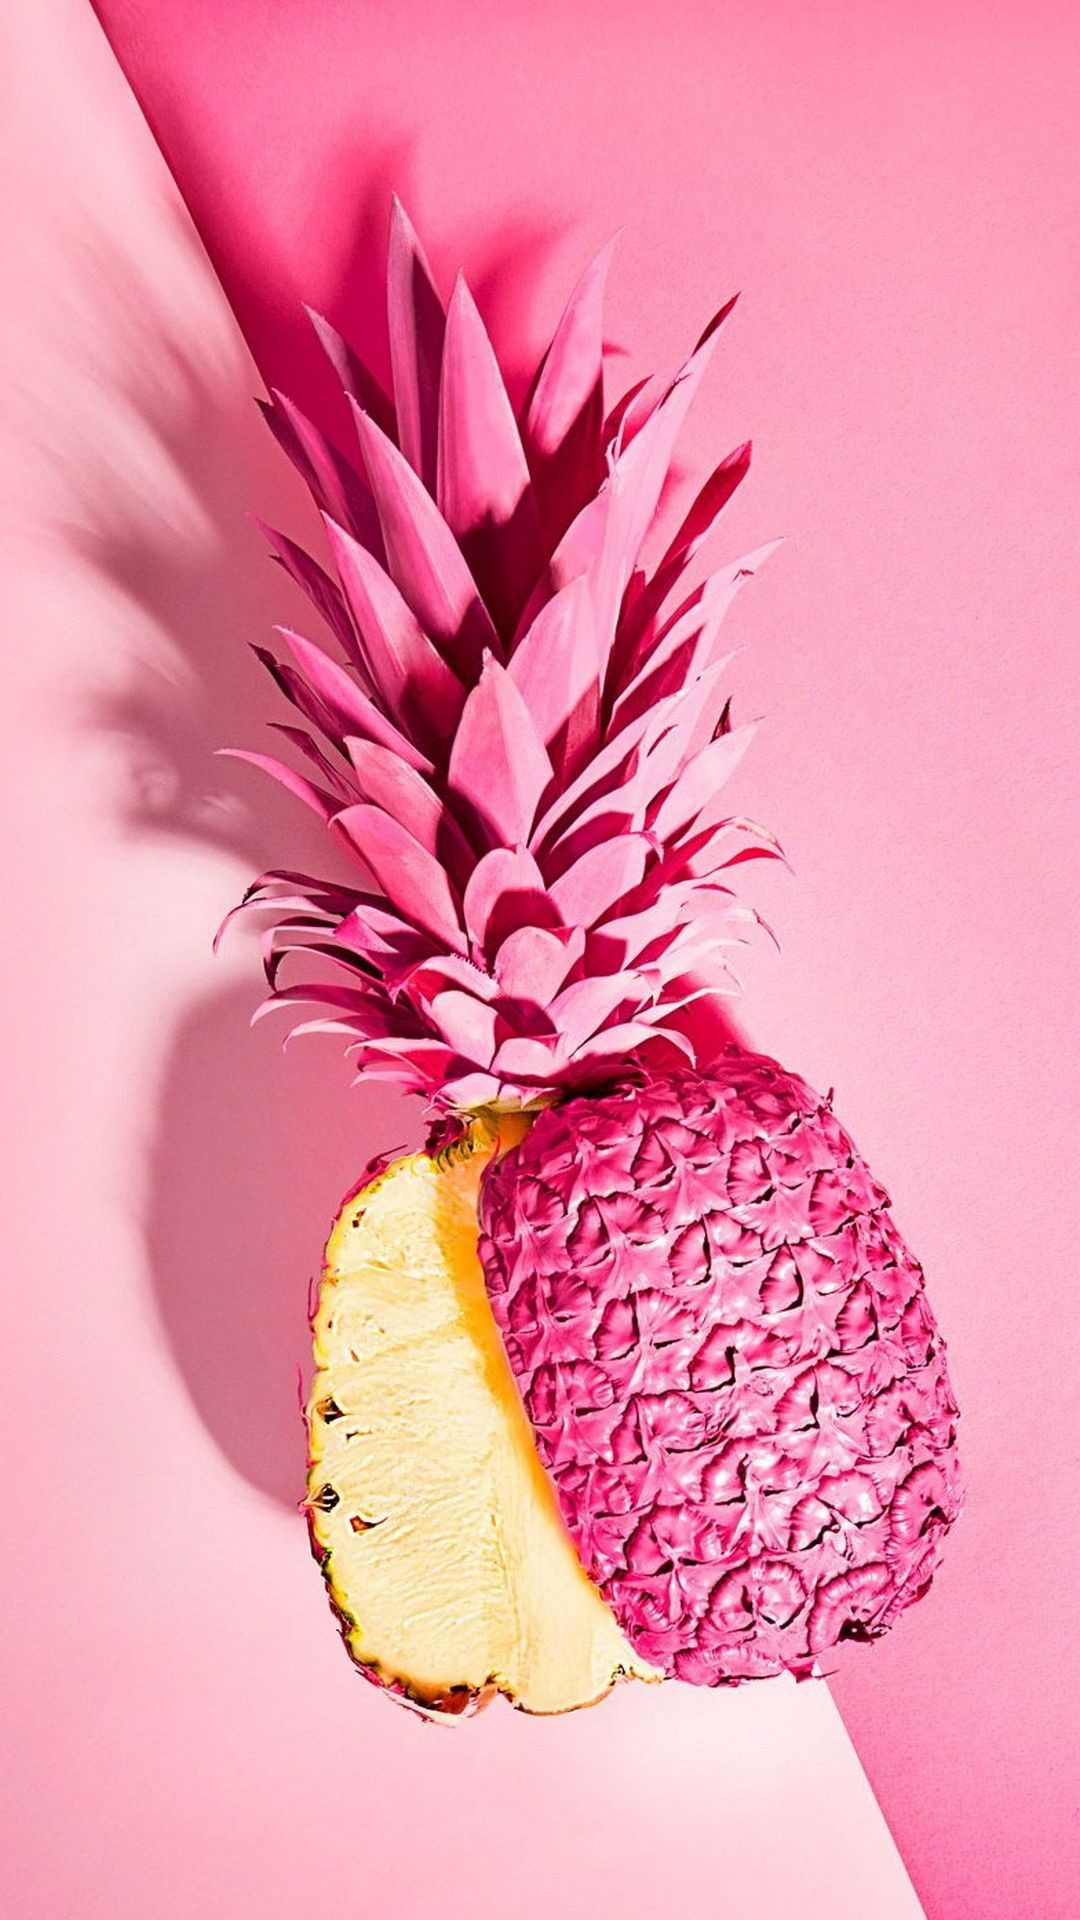 Pink Pineapple Mobile Wallpaper Best HD Wallpapers